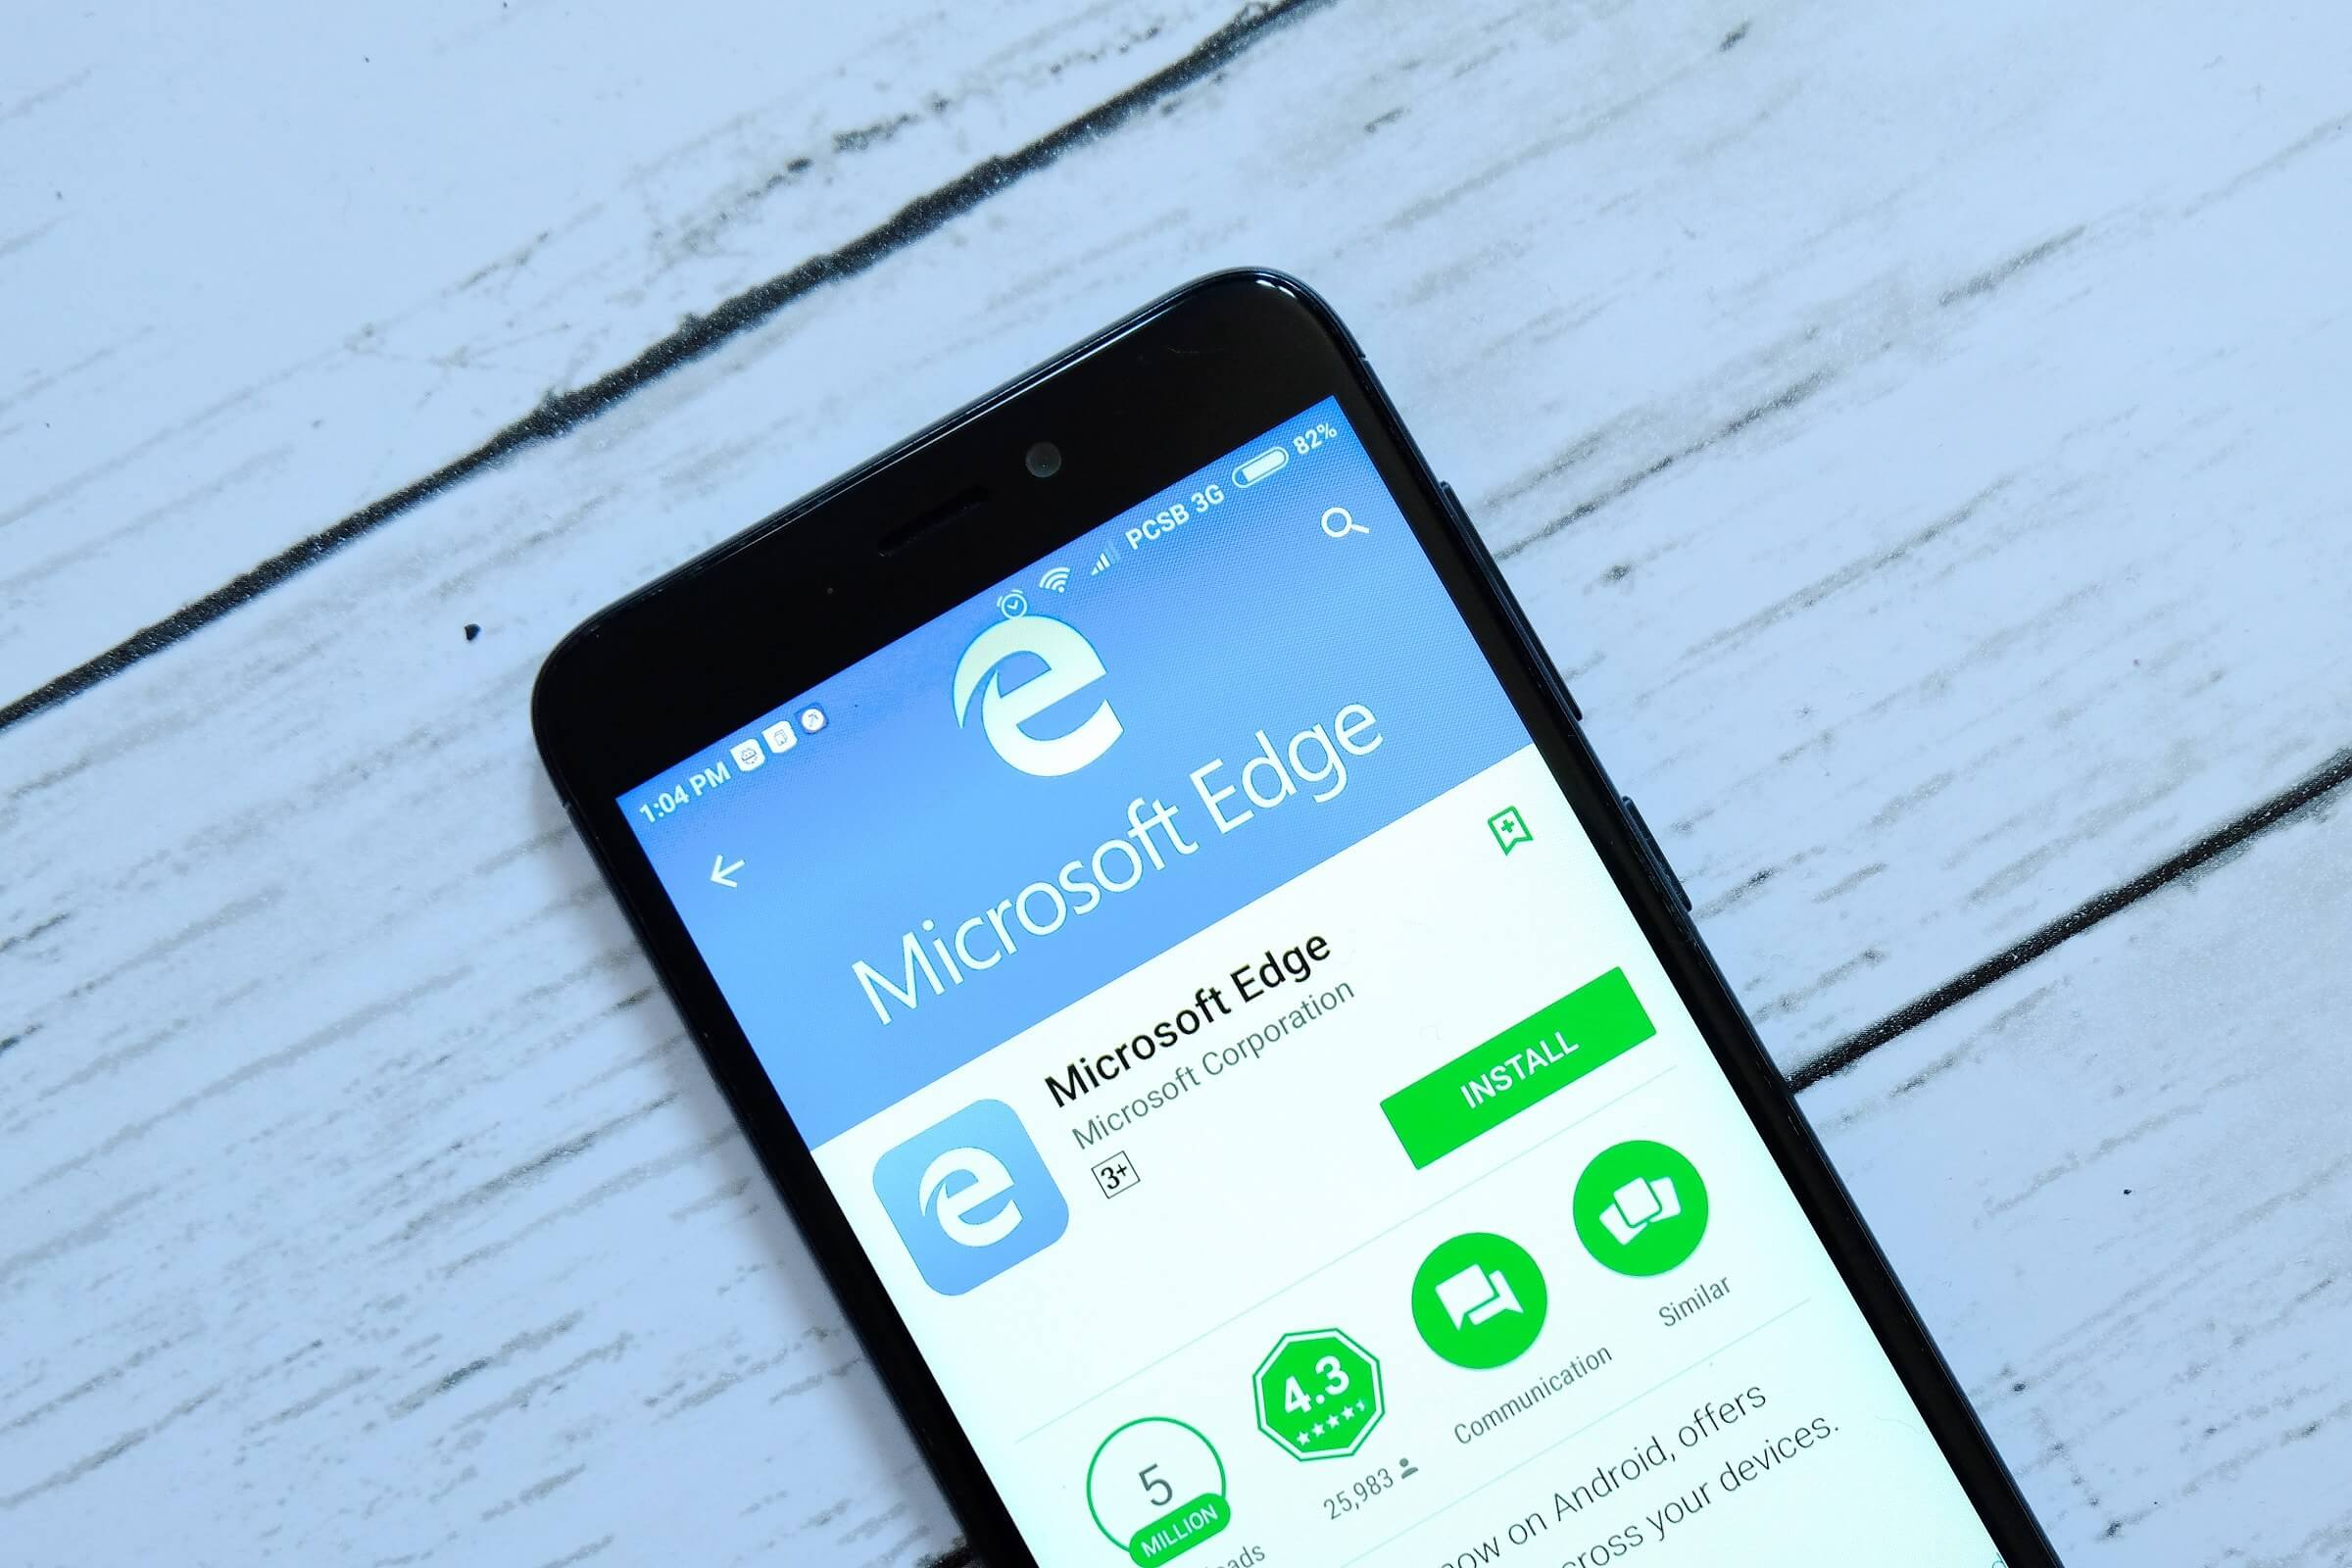 Microsoft's mobile Edge browser will warn users about fake